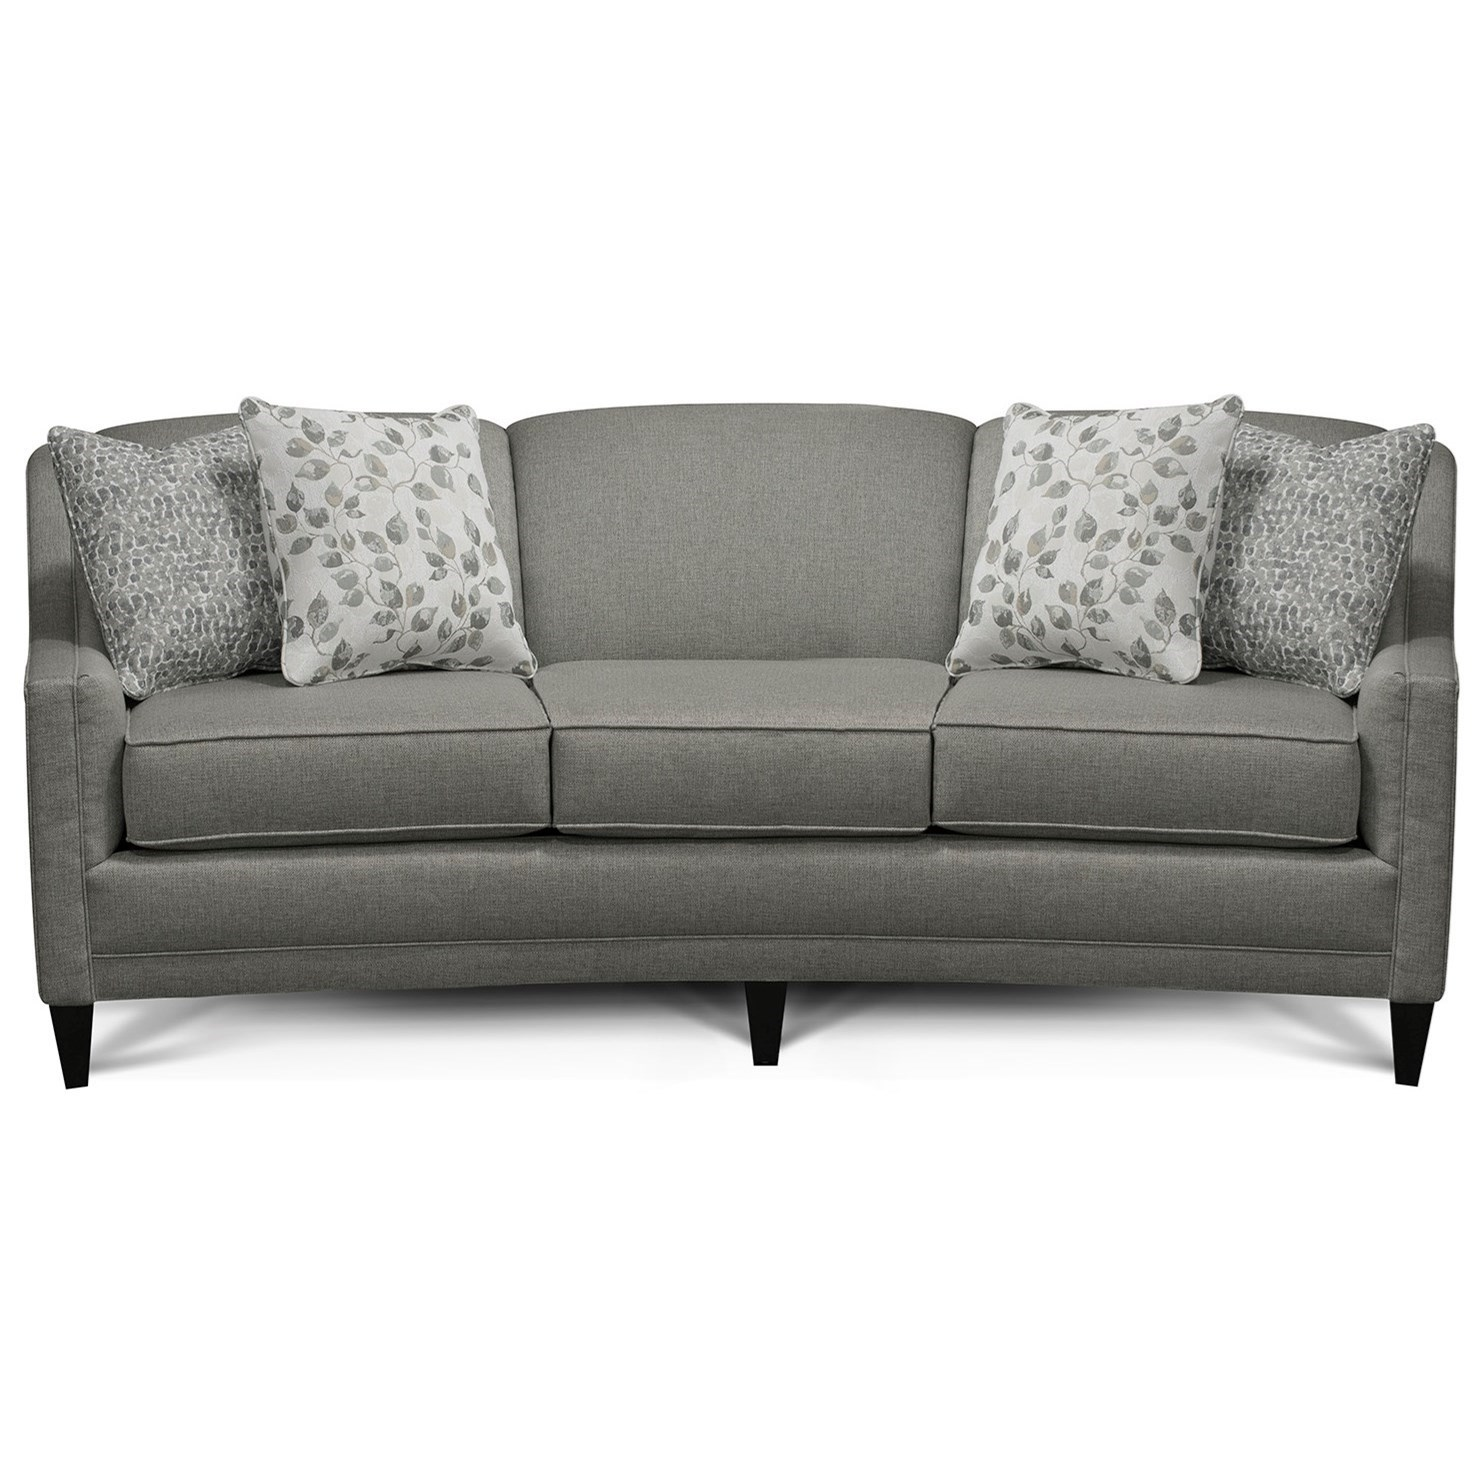 England Meredith Transitional Sofa With Track Arms